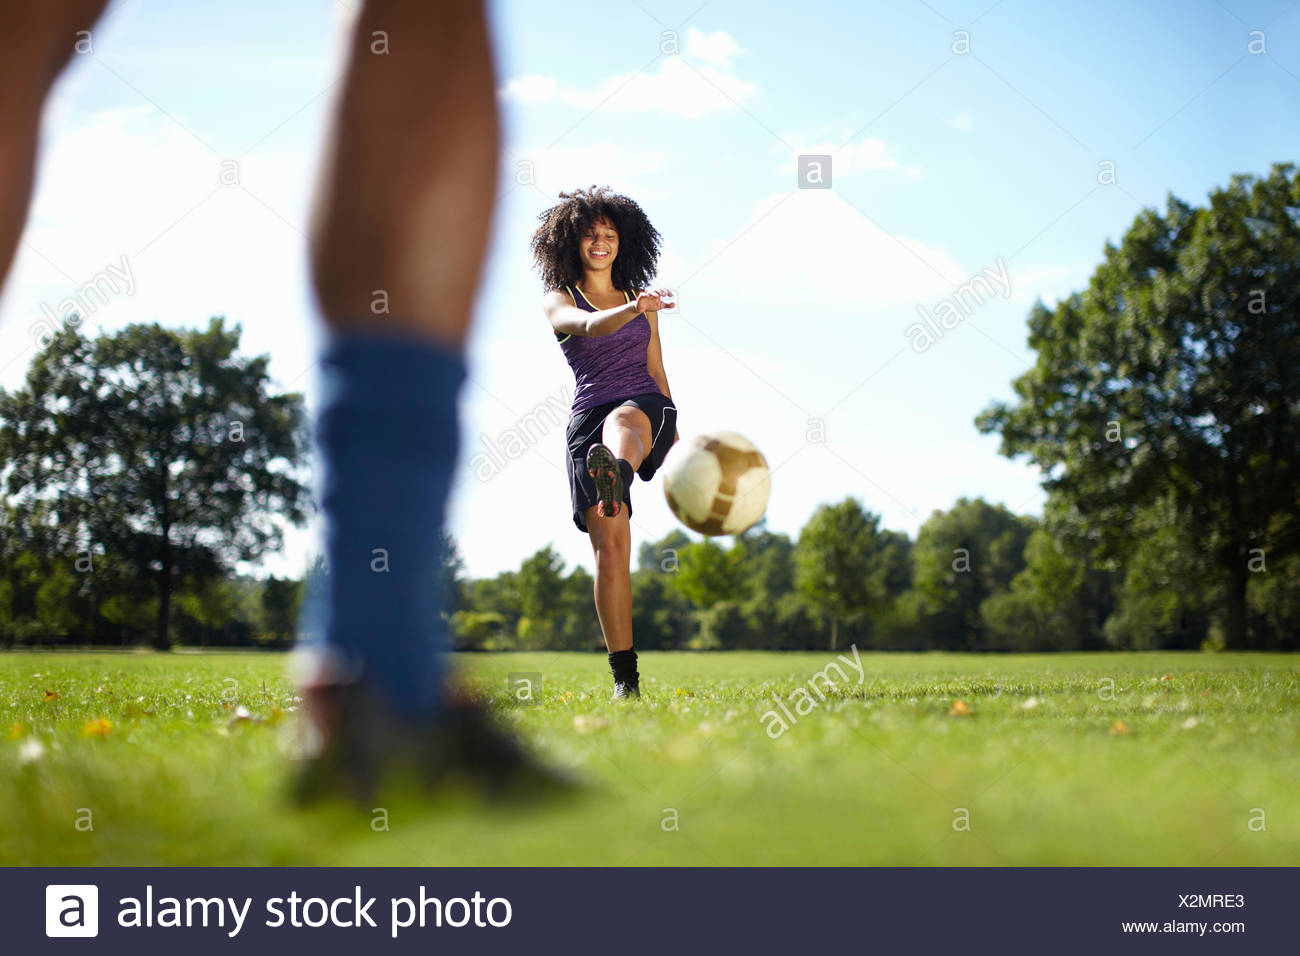 Young woman kicking soccer ball toward boyfriend in park - Stock Image